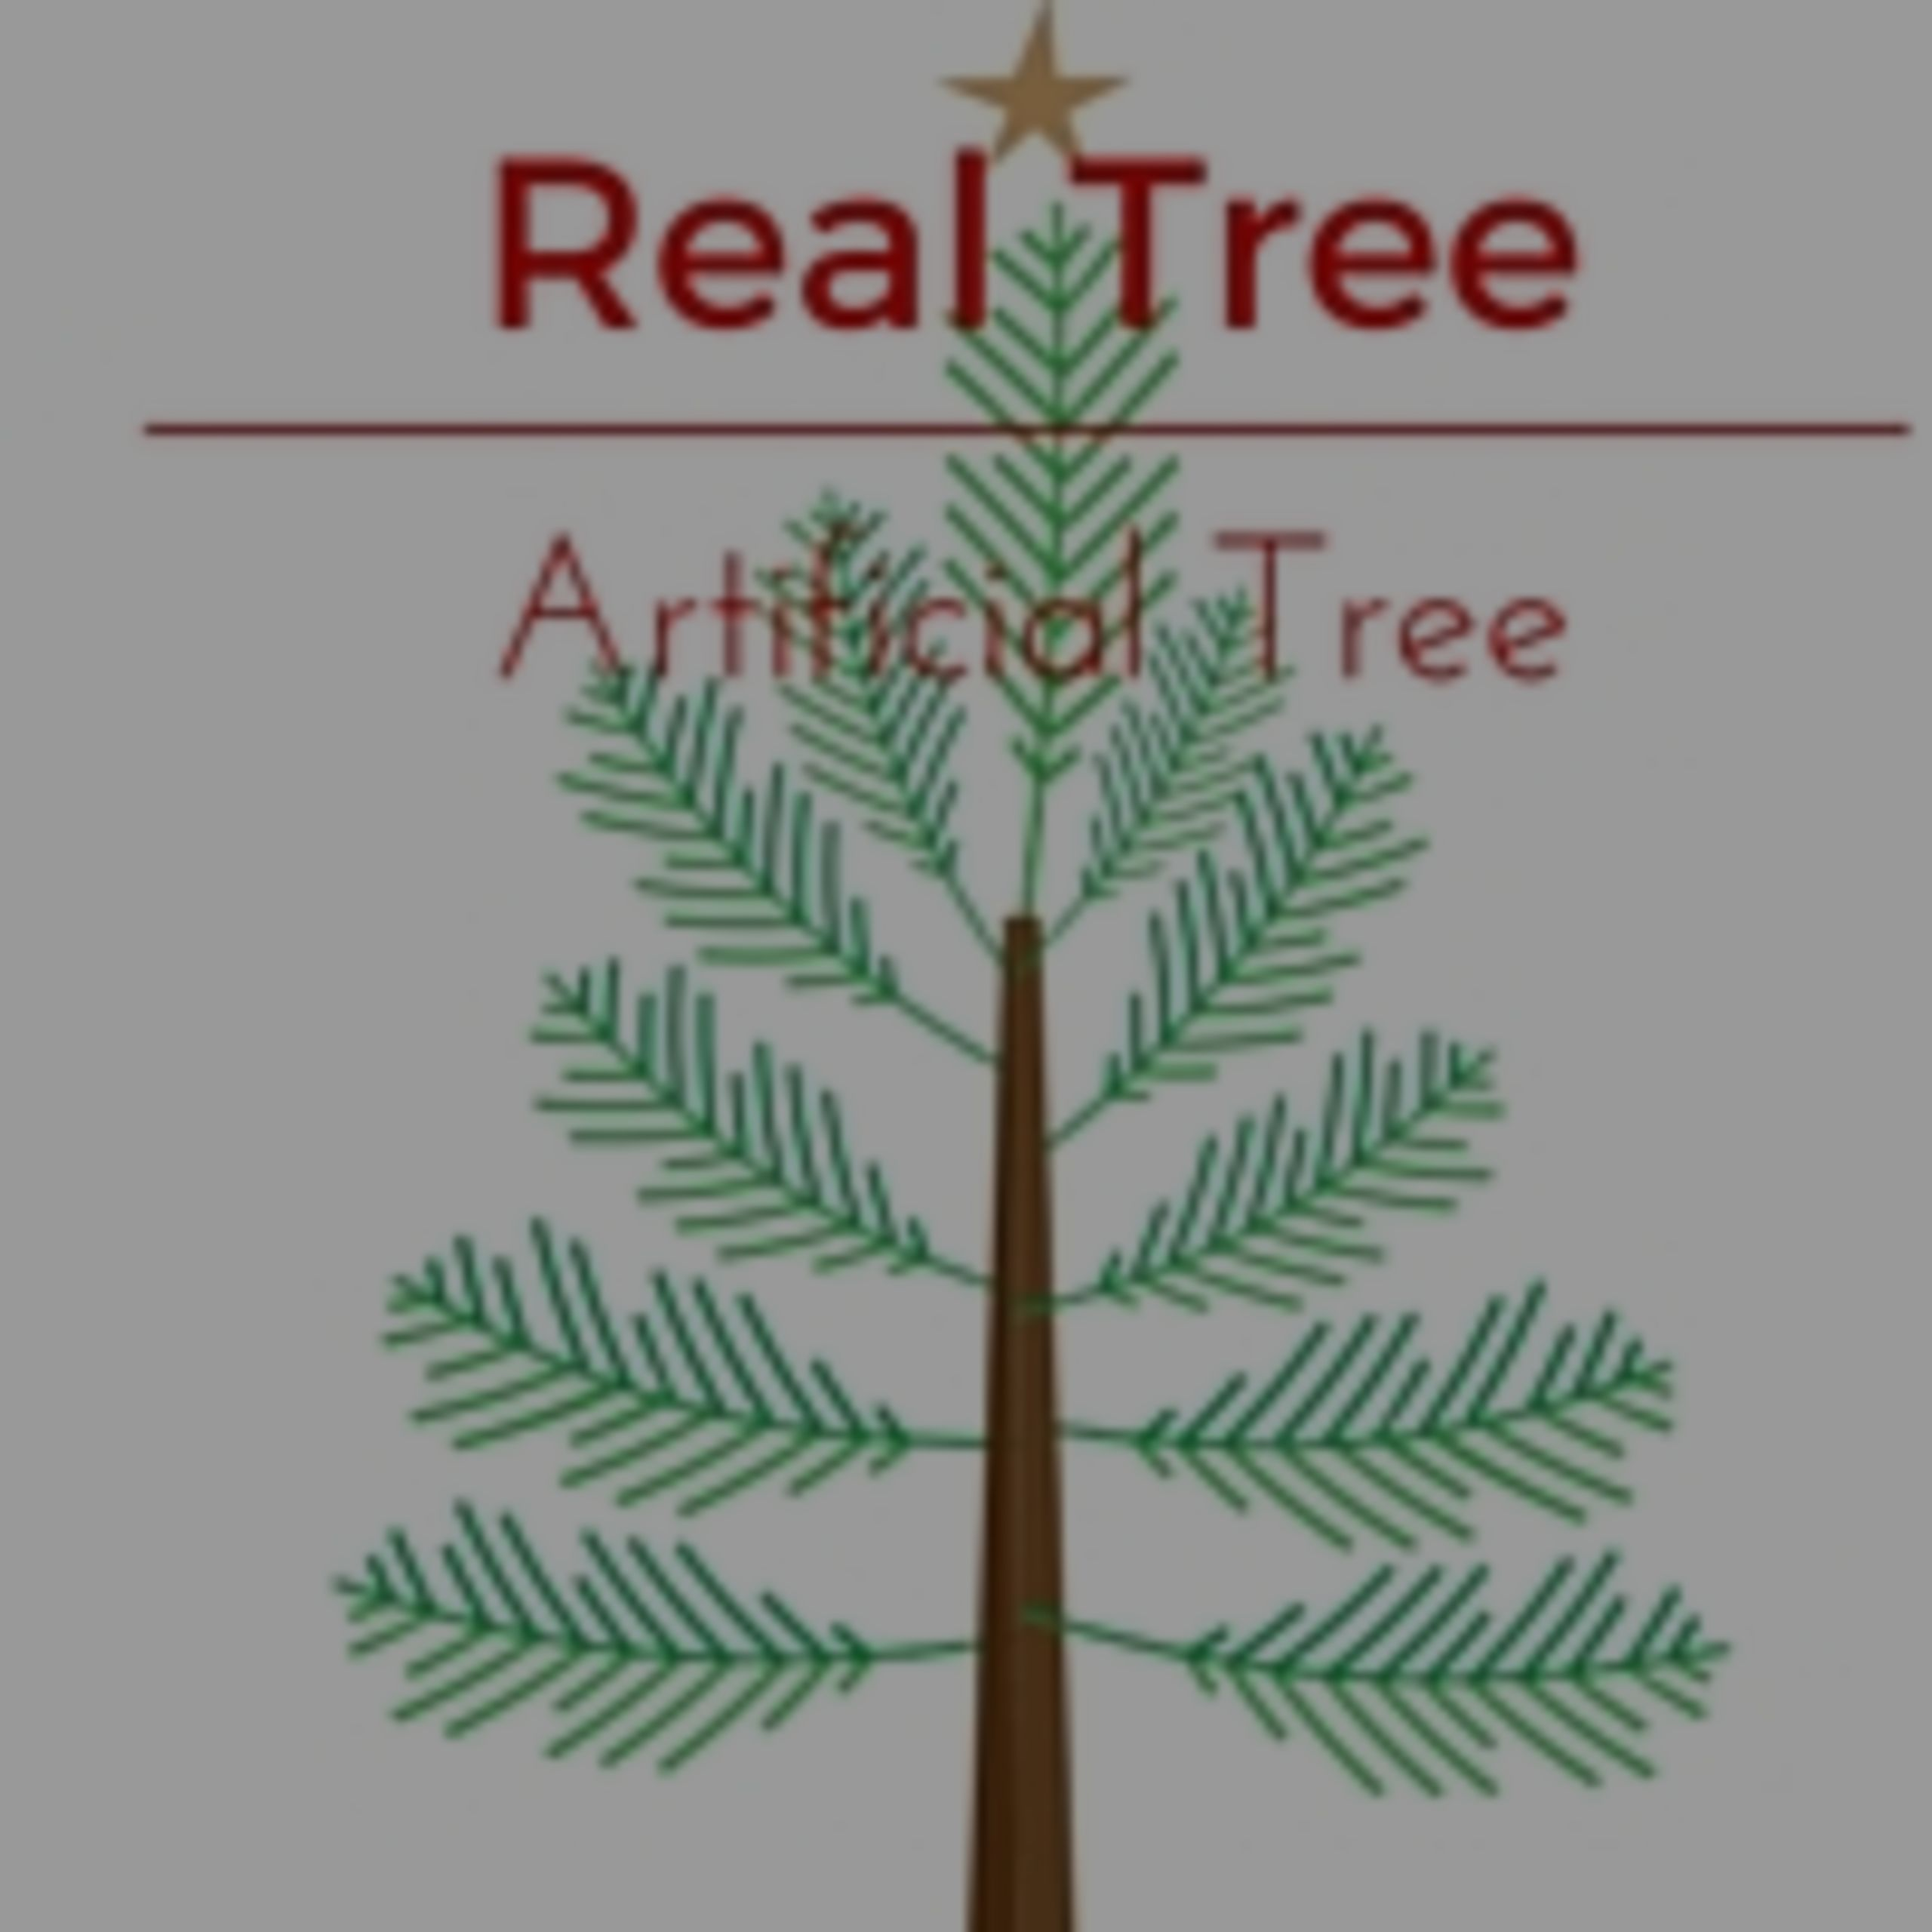 Real Christmas Trees vs. Fake Christmas Trees: Which are Greener?